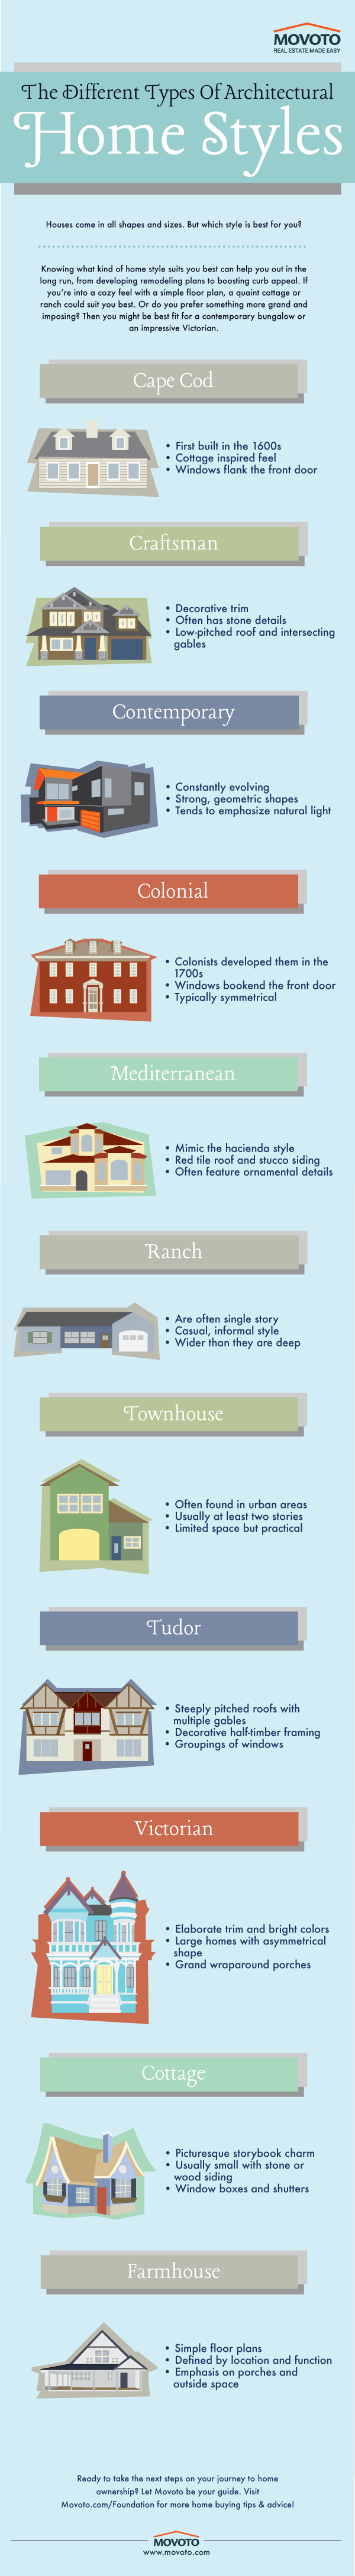 Infographic How To Identify The Different Styles Of Home